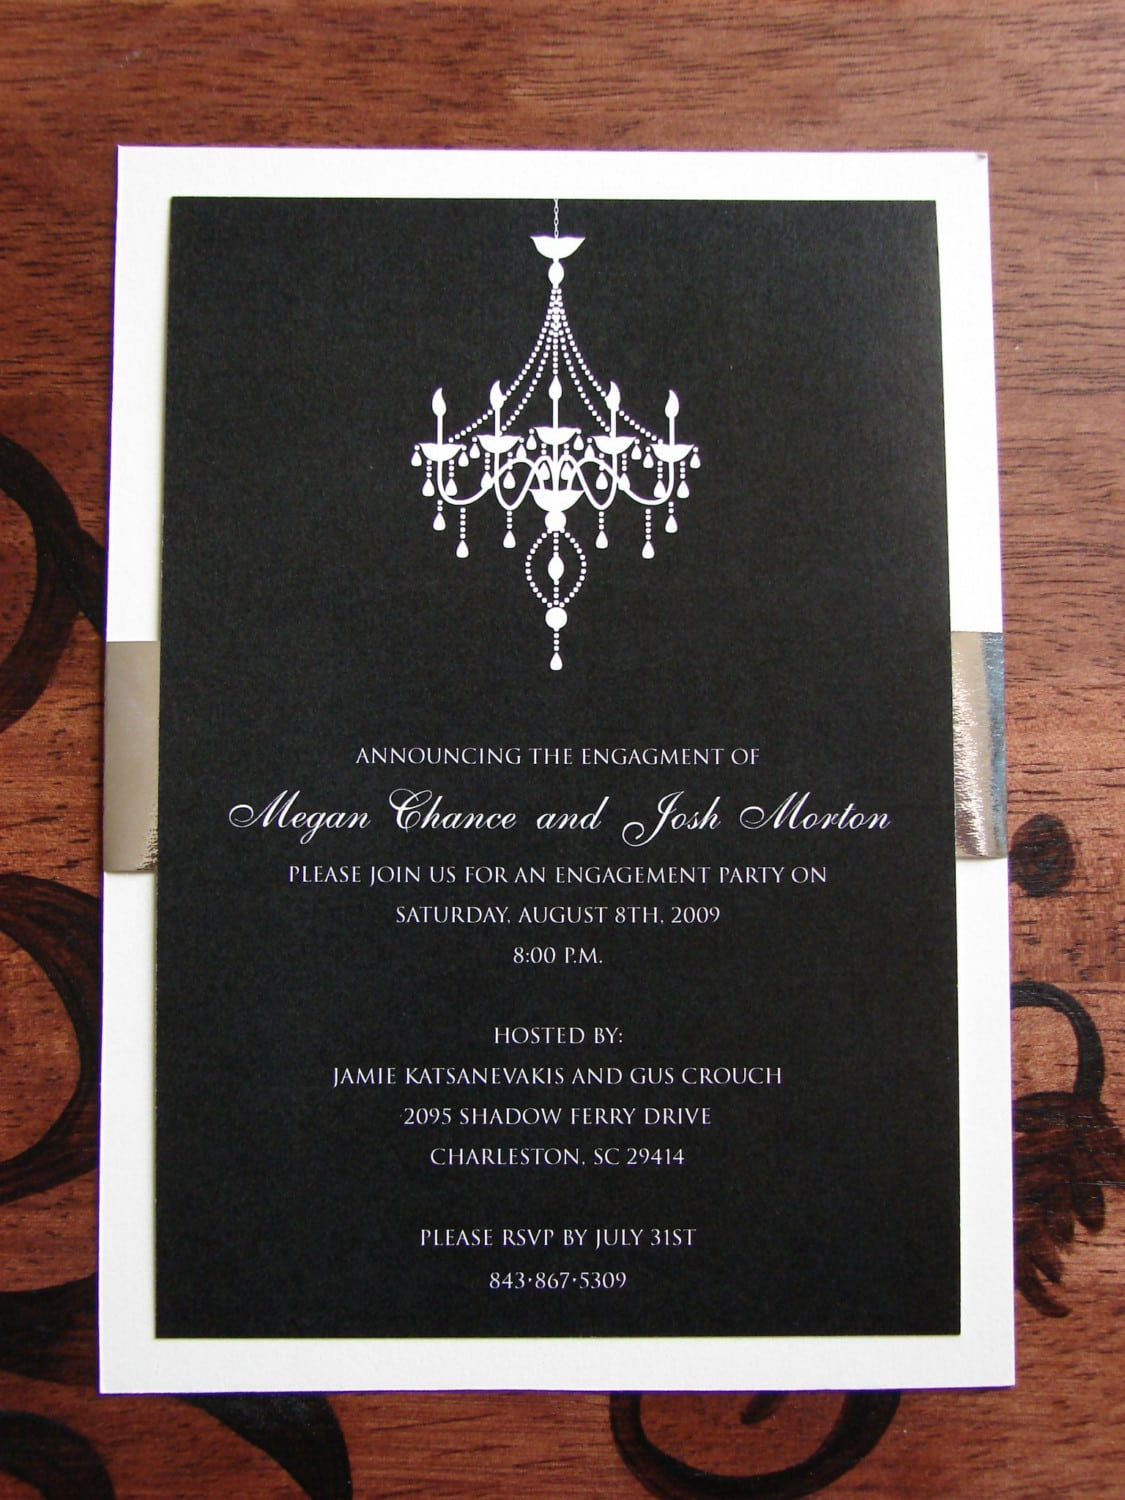 Engagement Party Invitations Save The Date Black Tie Party